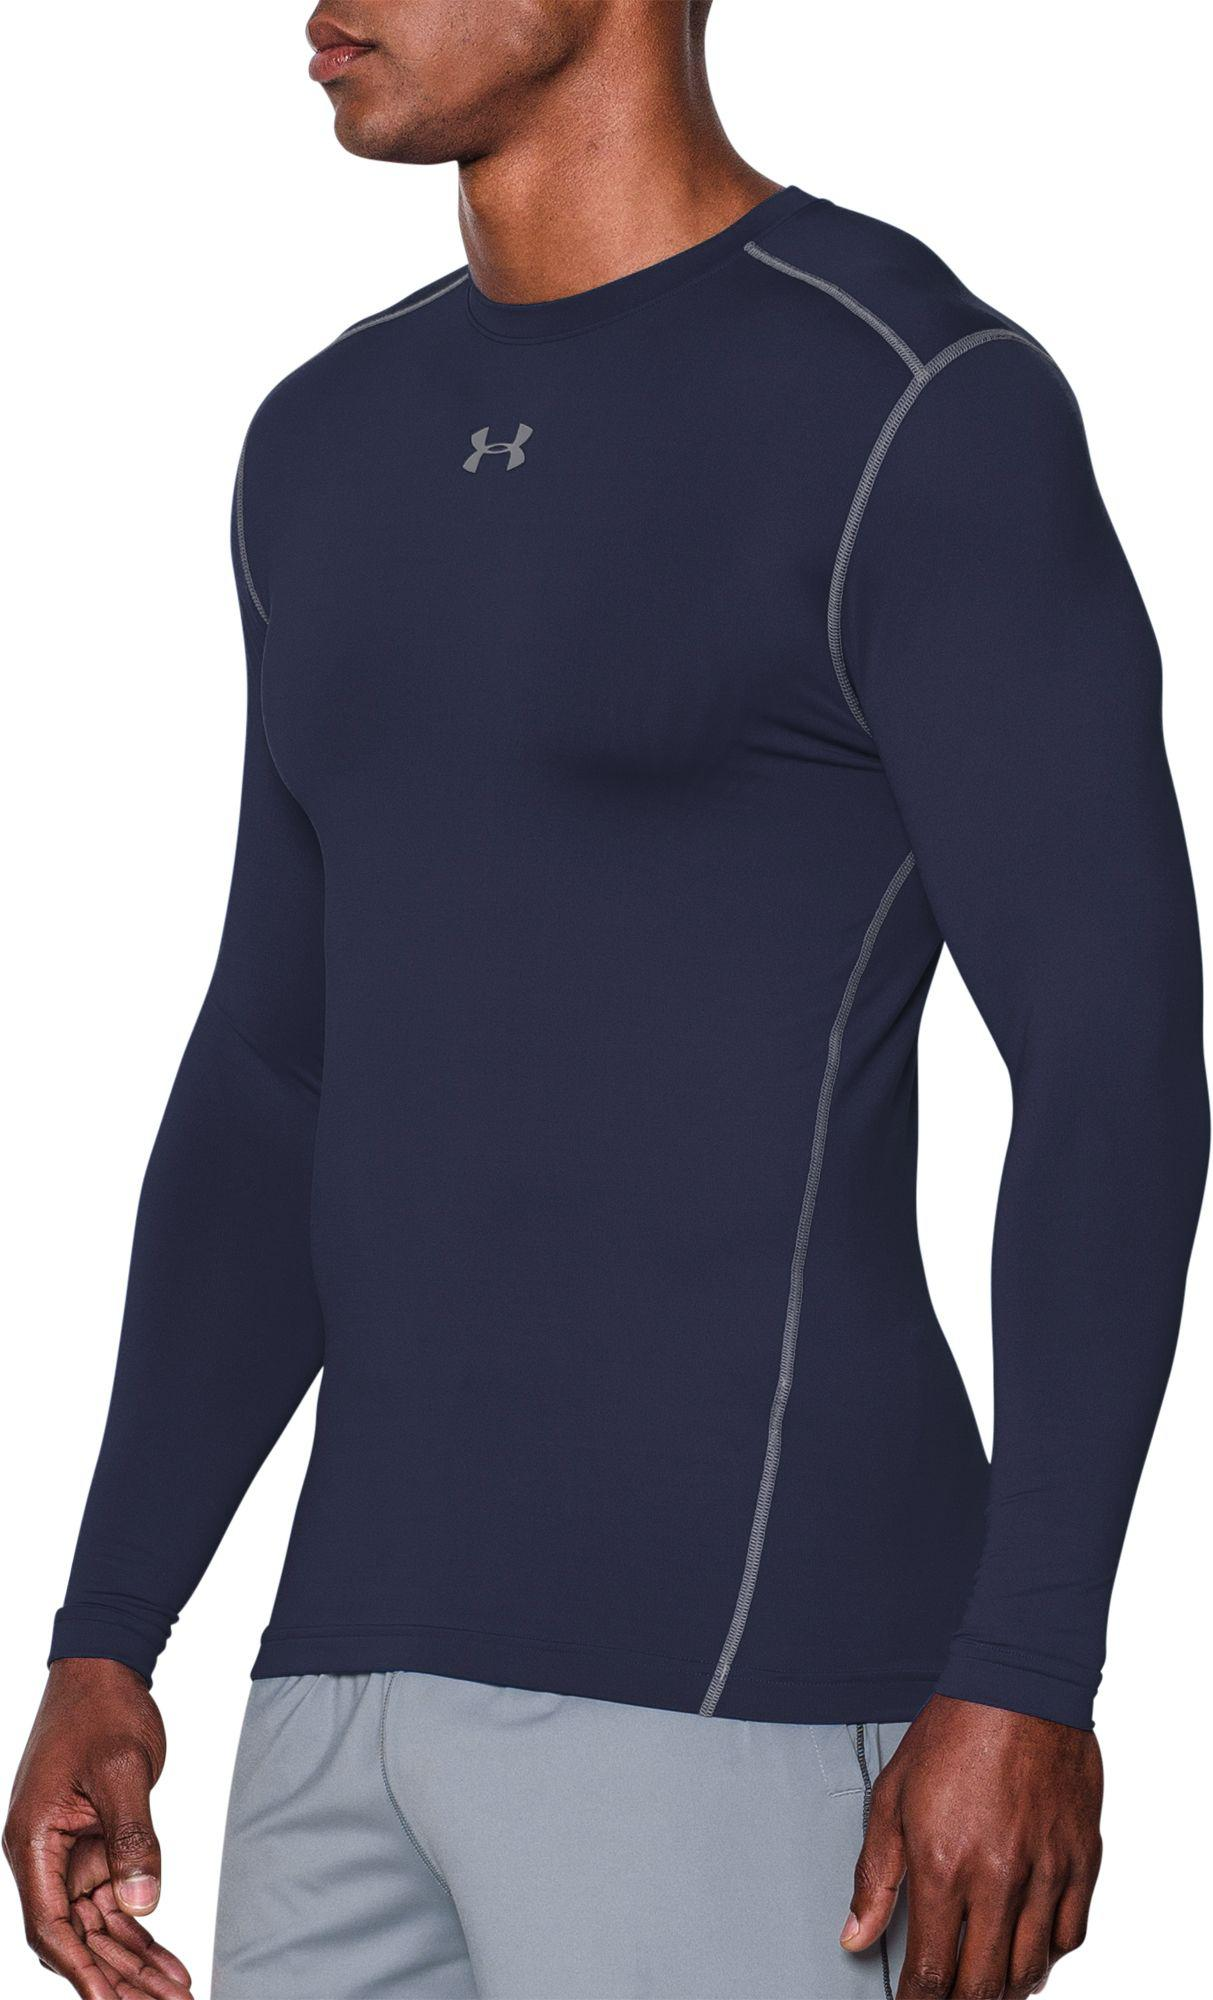 688fda3ec Under Armour - Blue Coldgear Armour Compression Crewneck Long Sleeve Shirt  for Men - Lyst